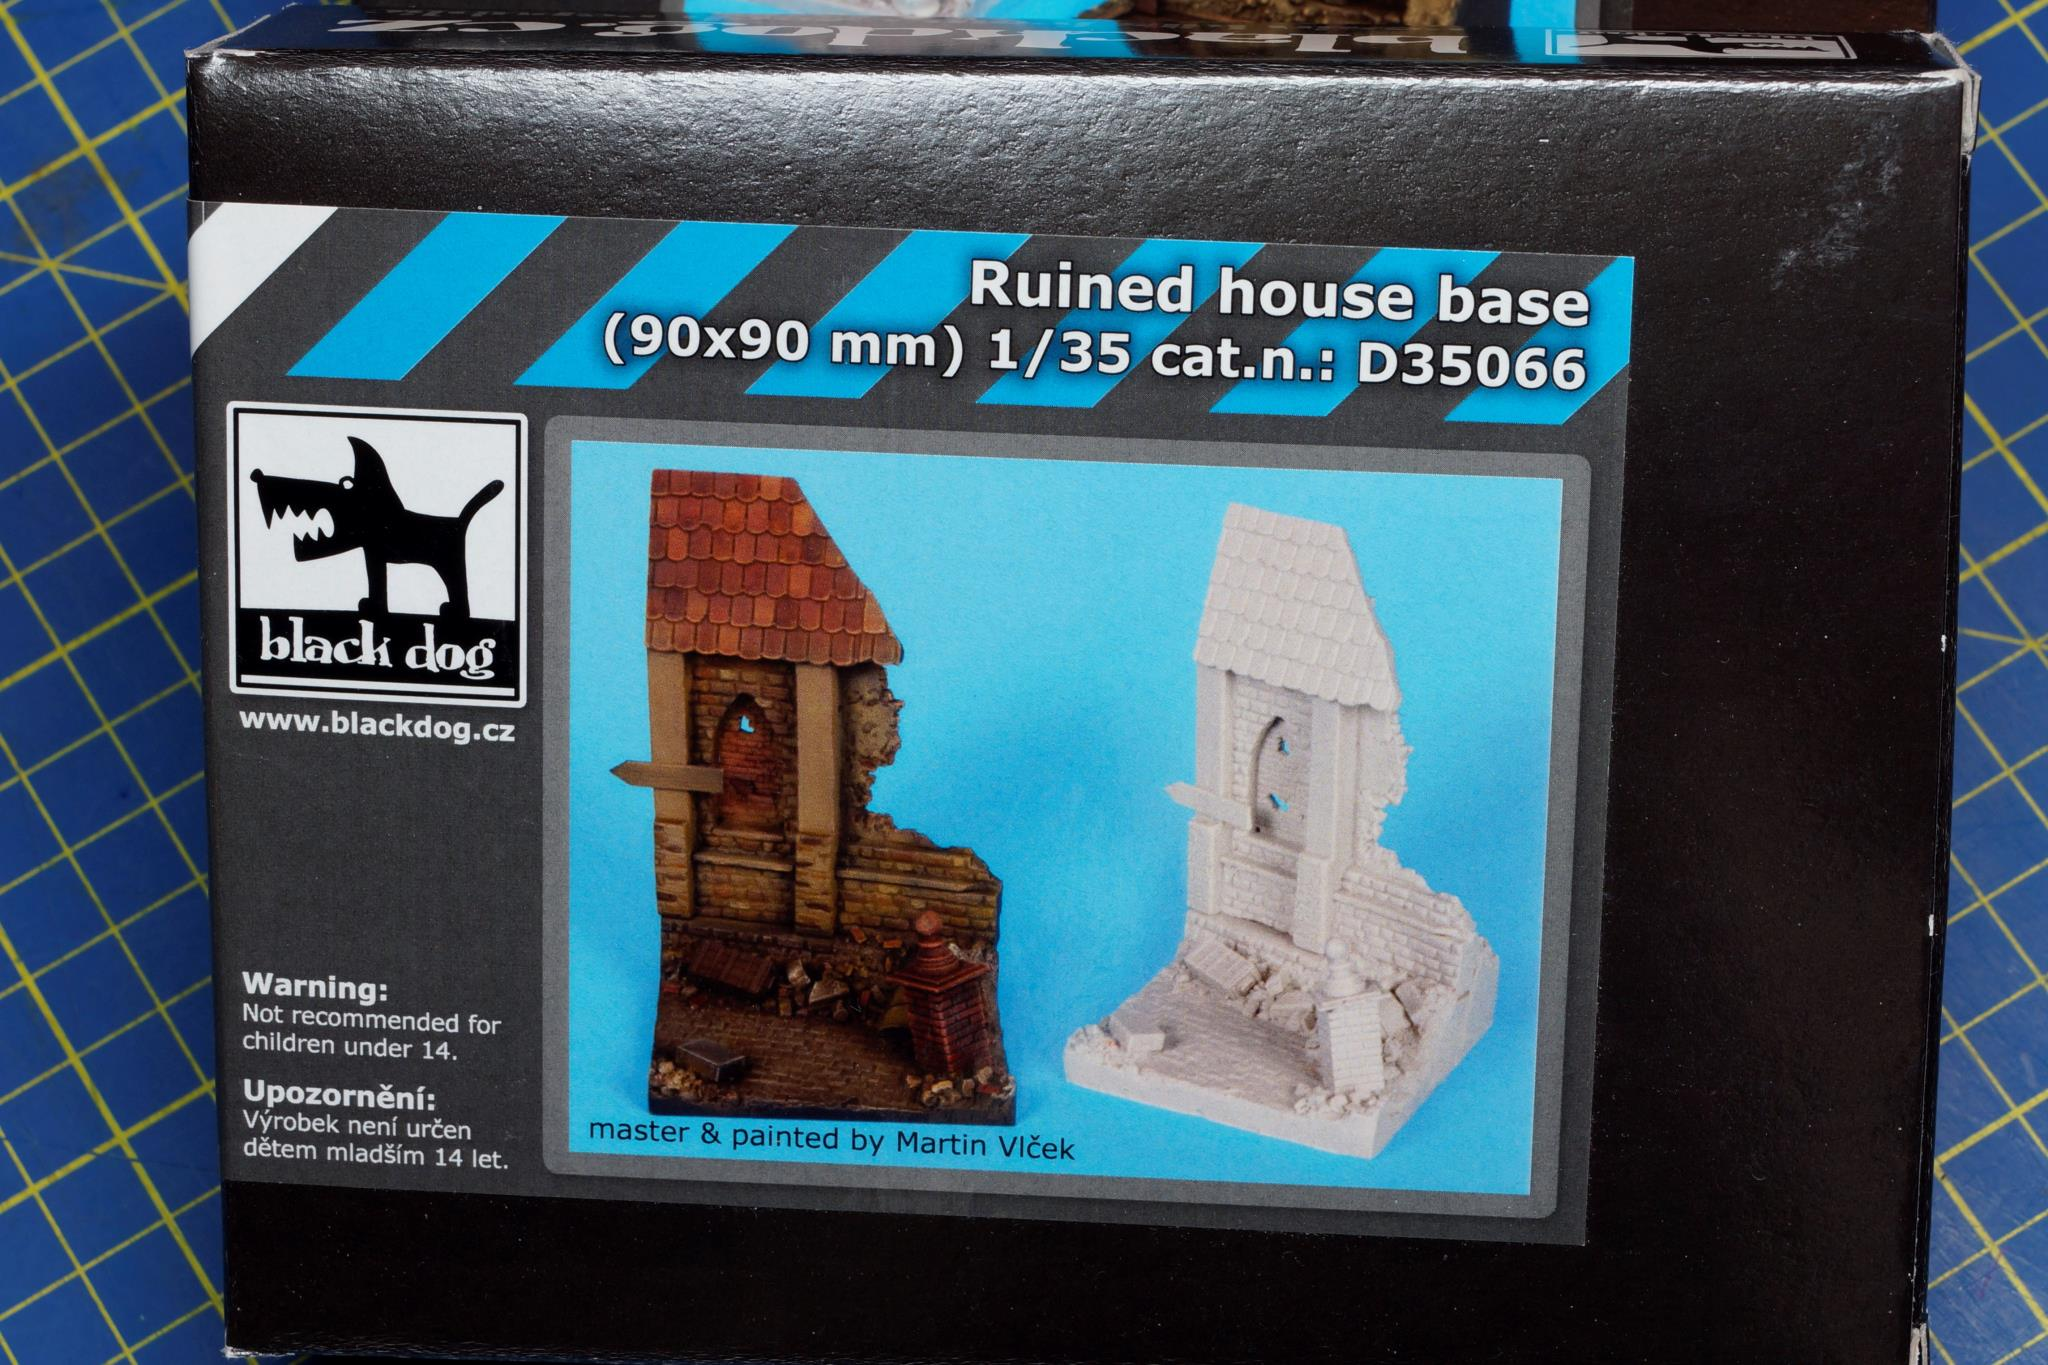 BLACK DOG RESIN BASE 1/35 D35066